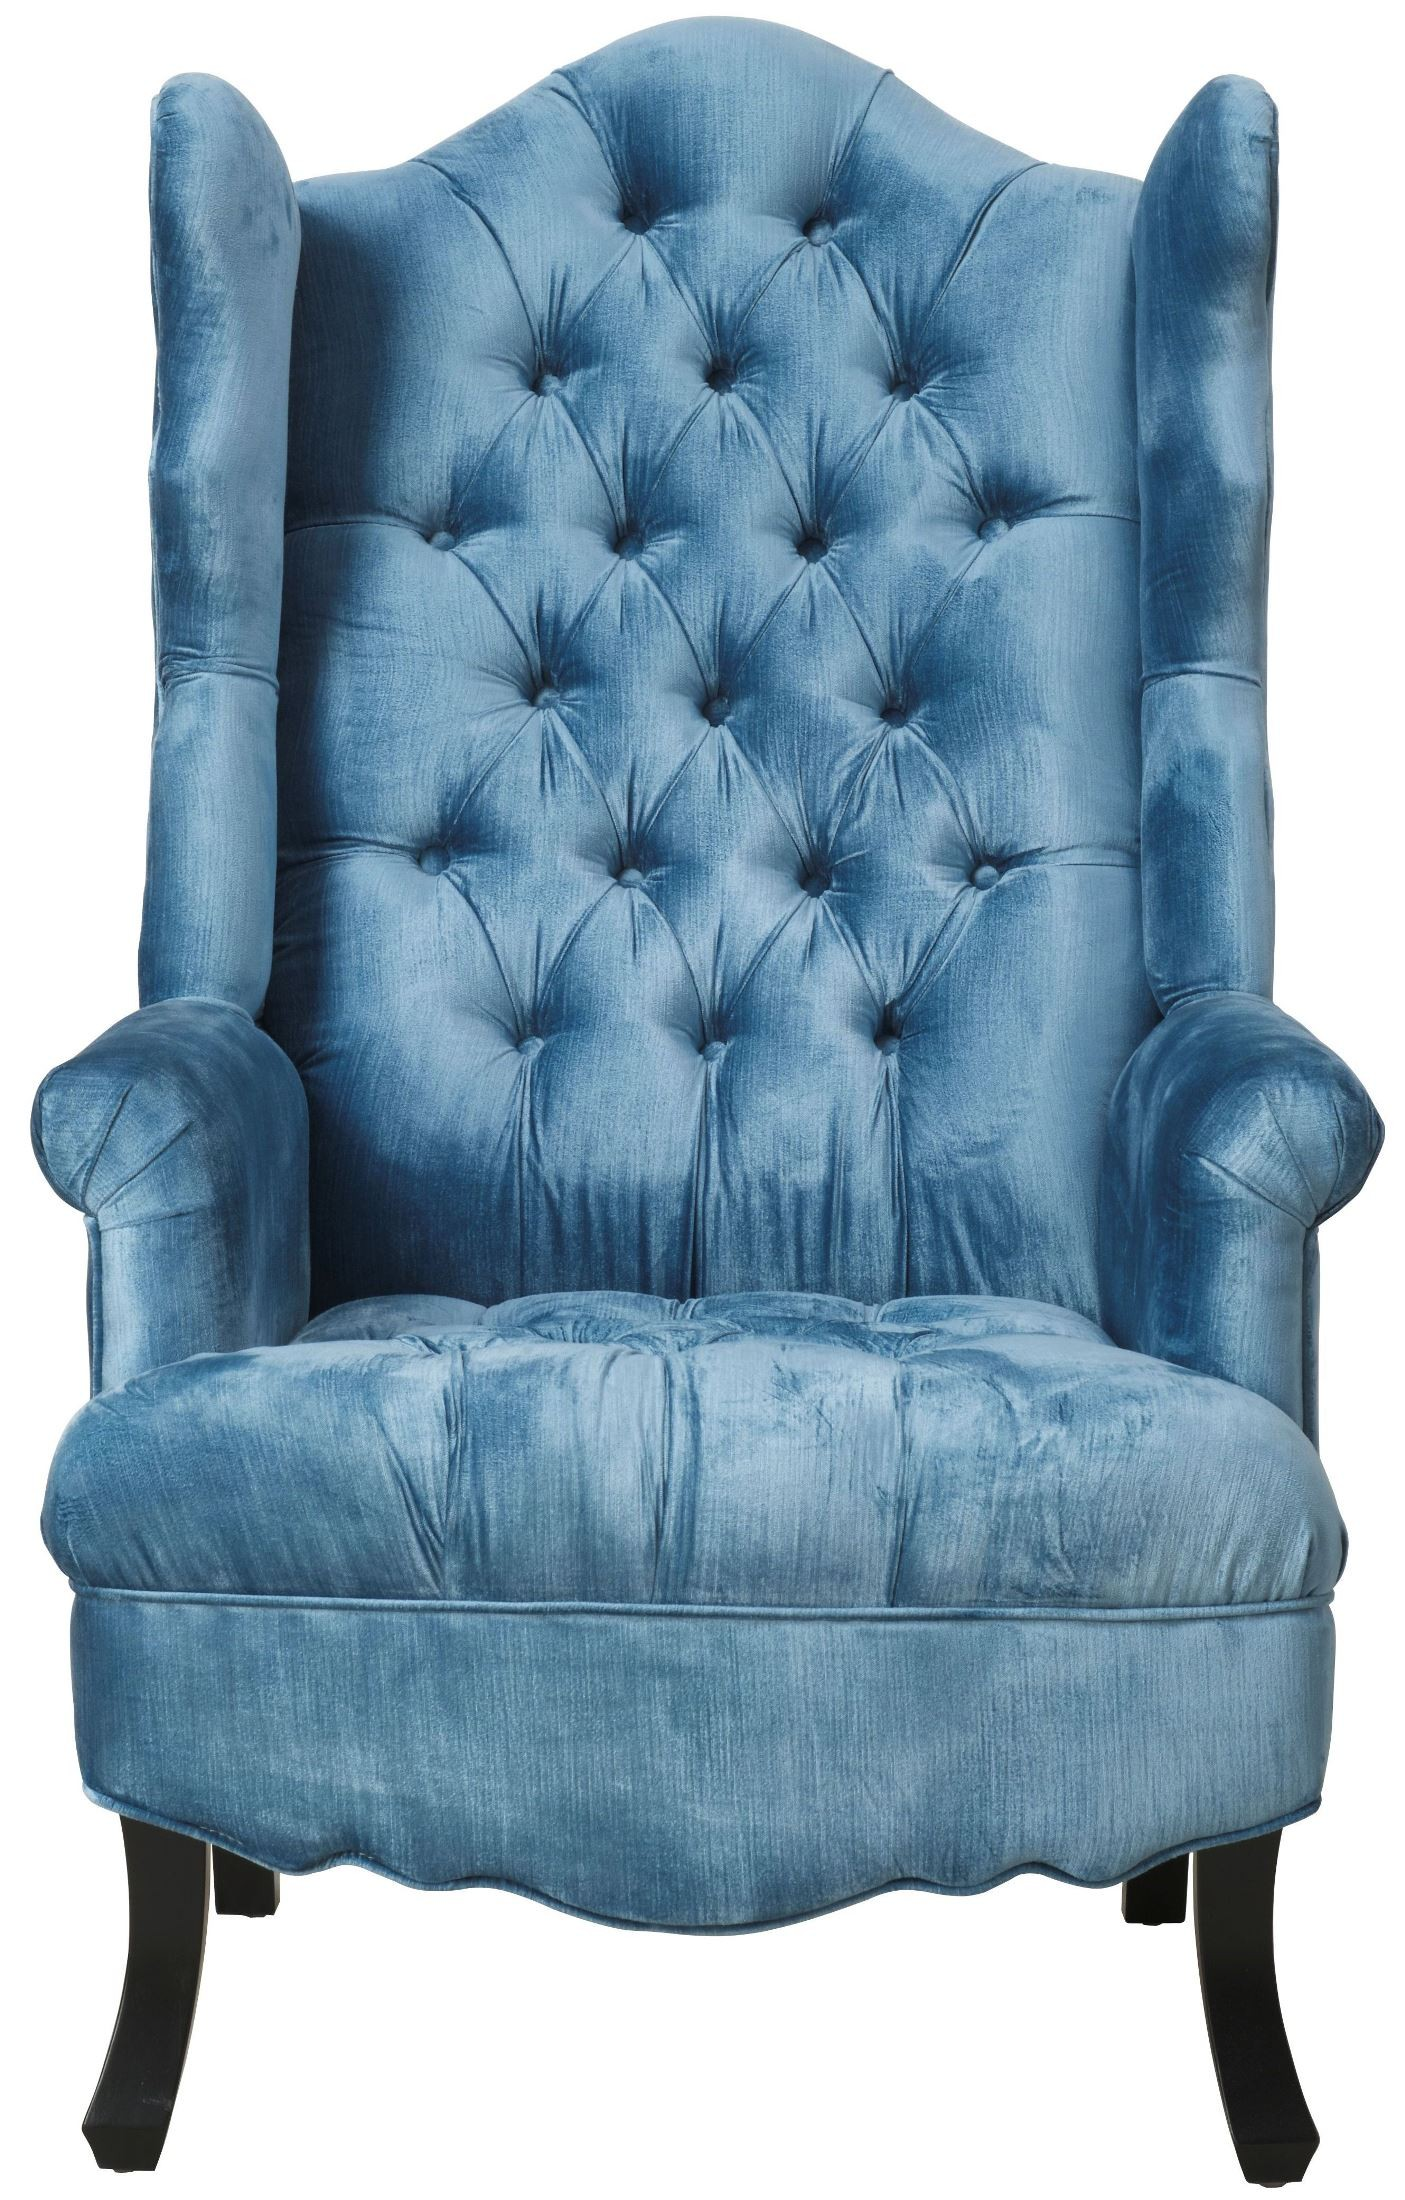 Blue Velvet Wingback Chair Madison Blue Velvet Wing Chair From Tov Tov A35 Blue